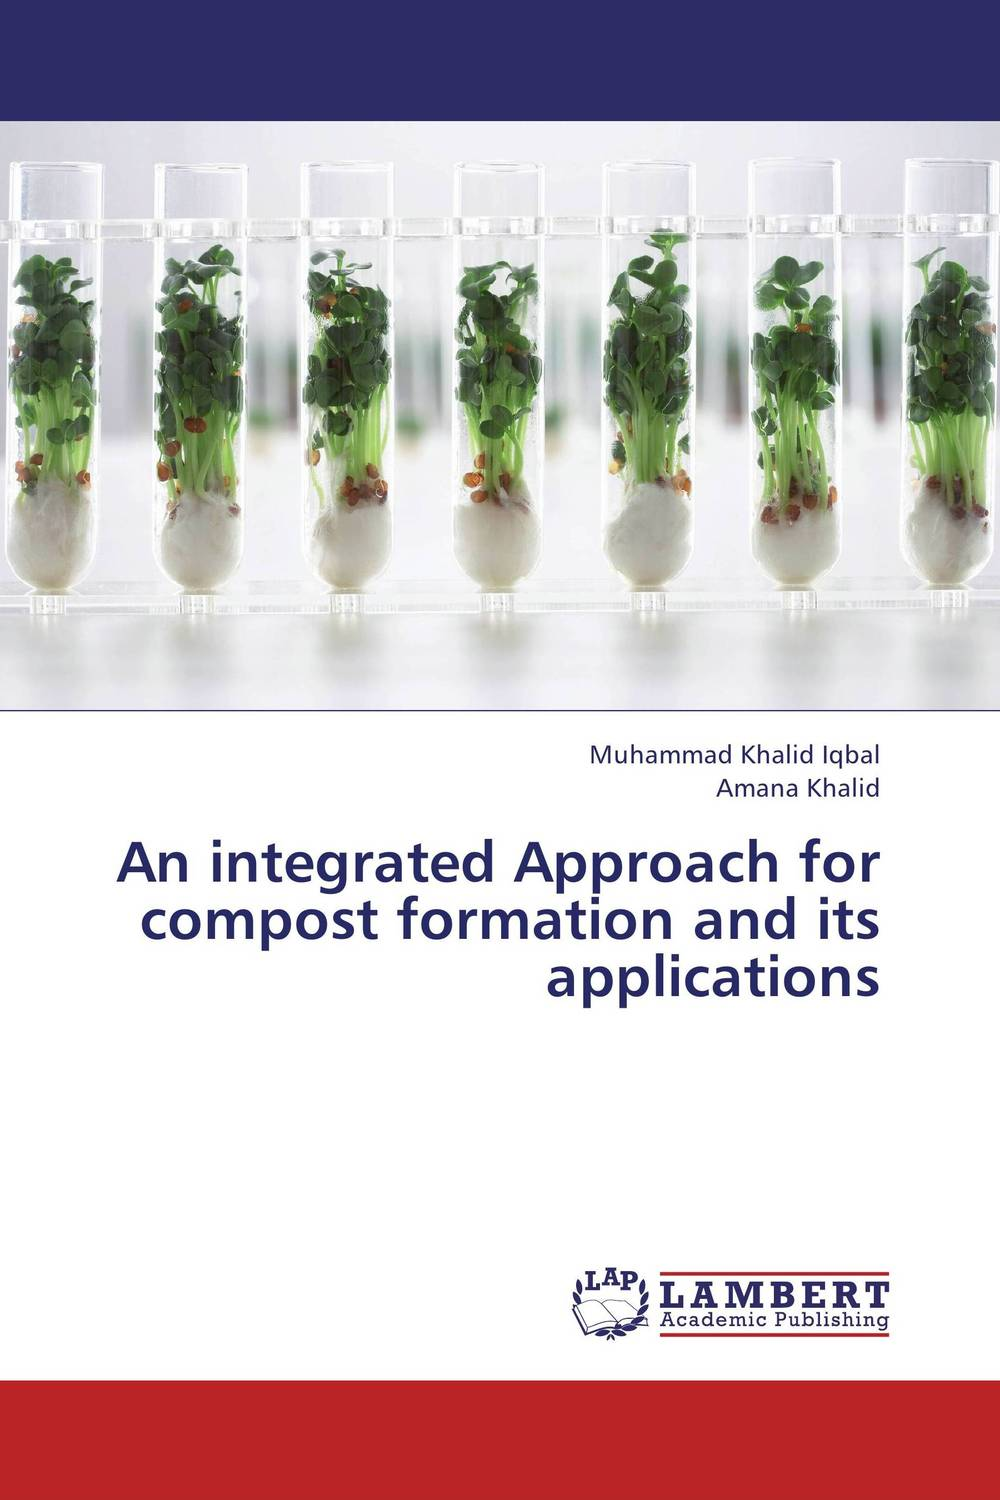 An integrated Approach for compost formation and its applications ali issa estimating the demand for money in libya an application of the lagrange multiplier structural break unit root test and the ardl cointegration approach